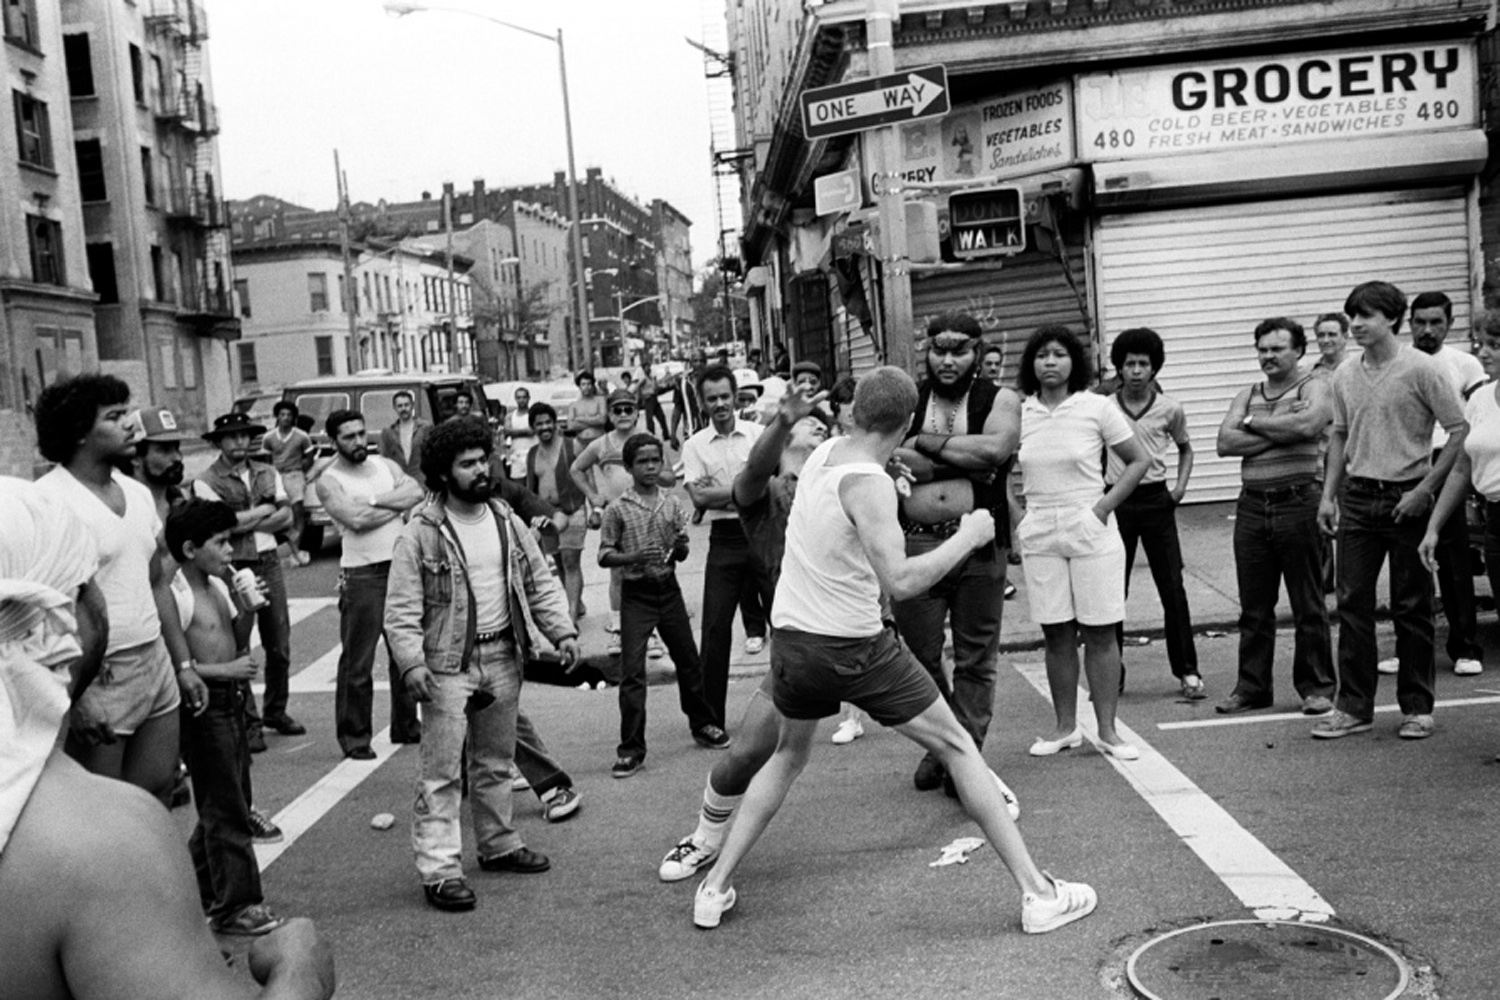 A street fight, from Bronx Boys (FotoEvidence, 2011) by Stephen Shames.